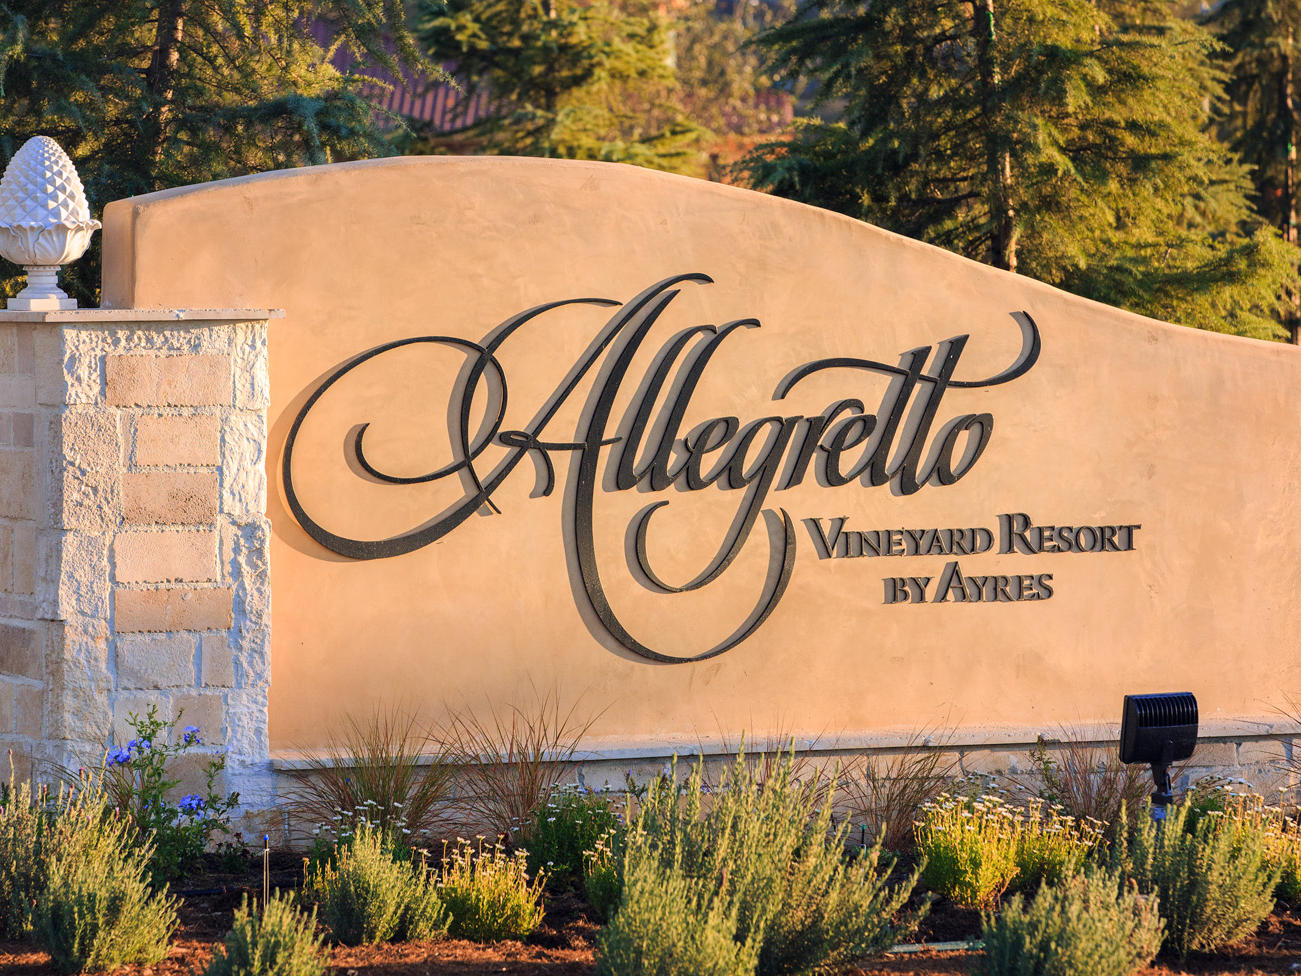 Allegretto Vineyard Resort sign at entrance